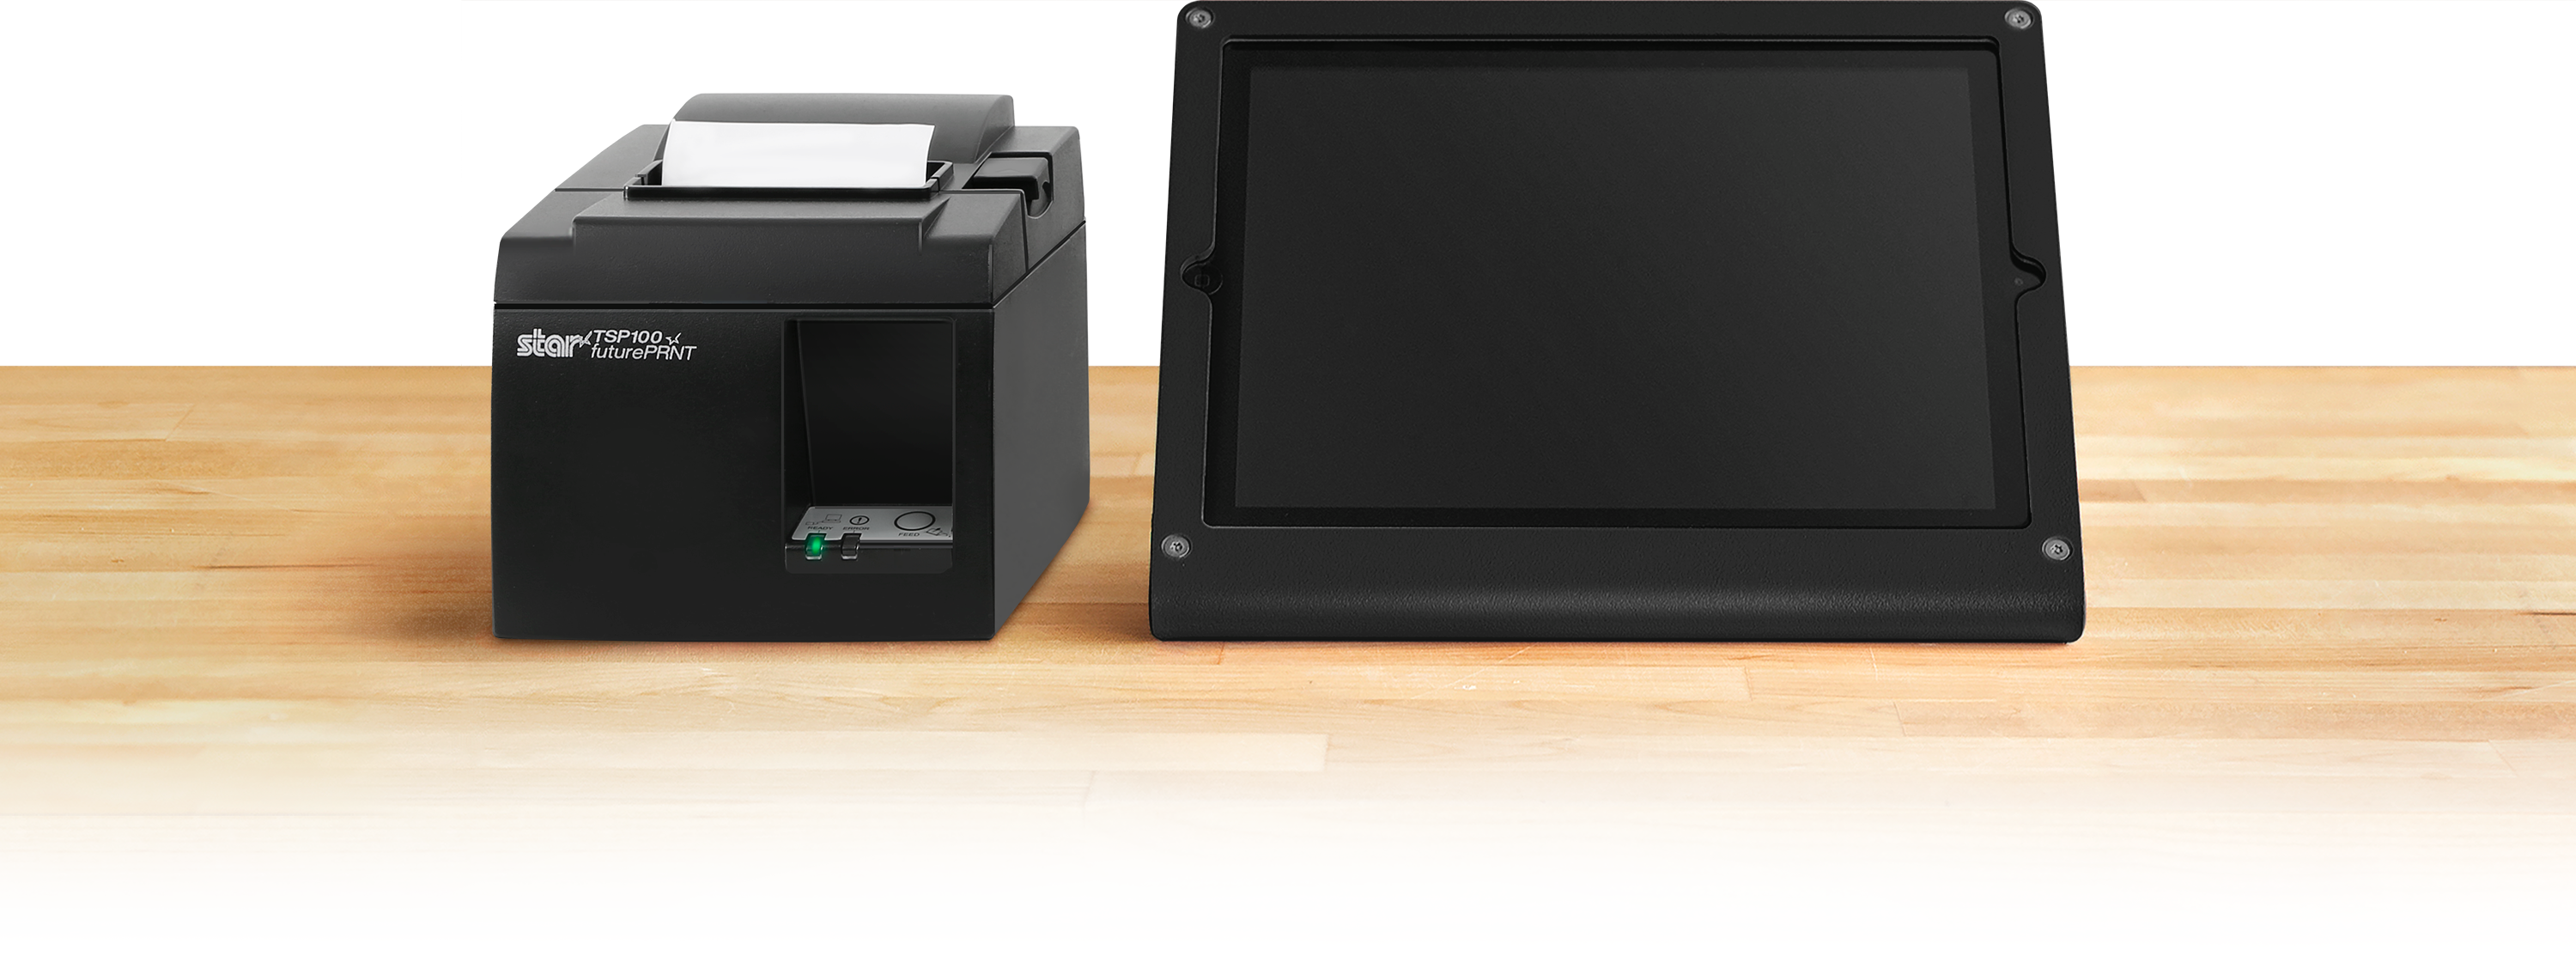 Ipad-receipt-printer-desk@2x